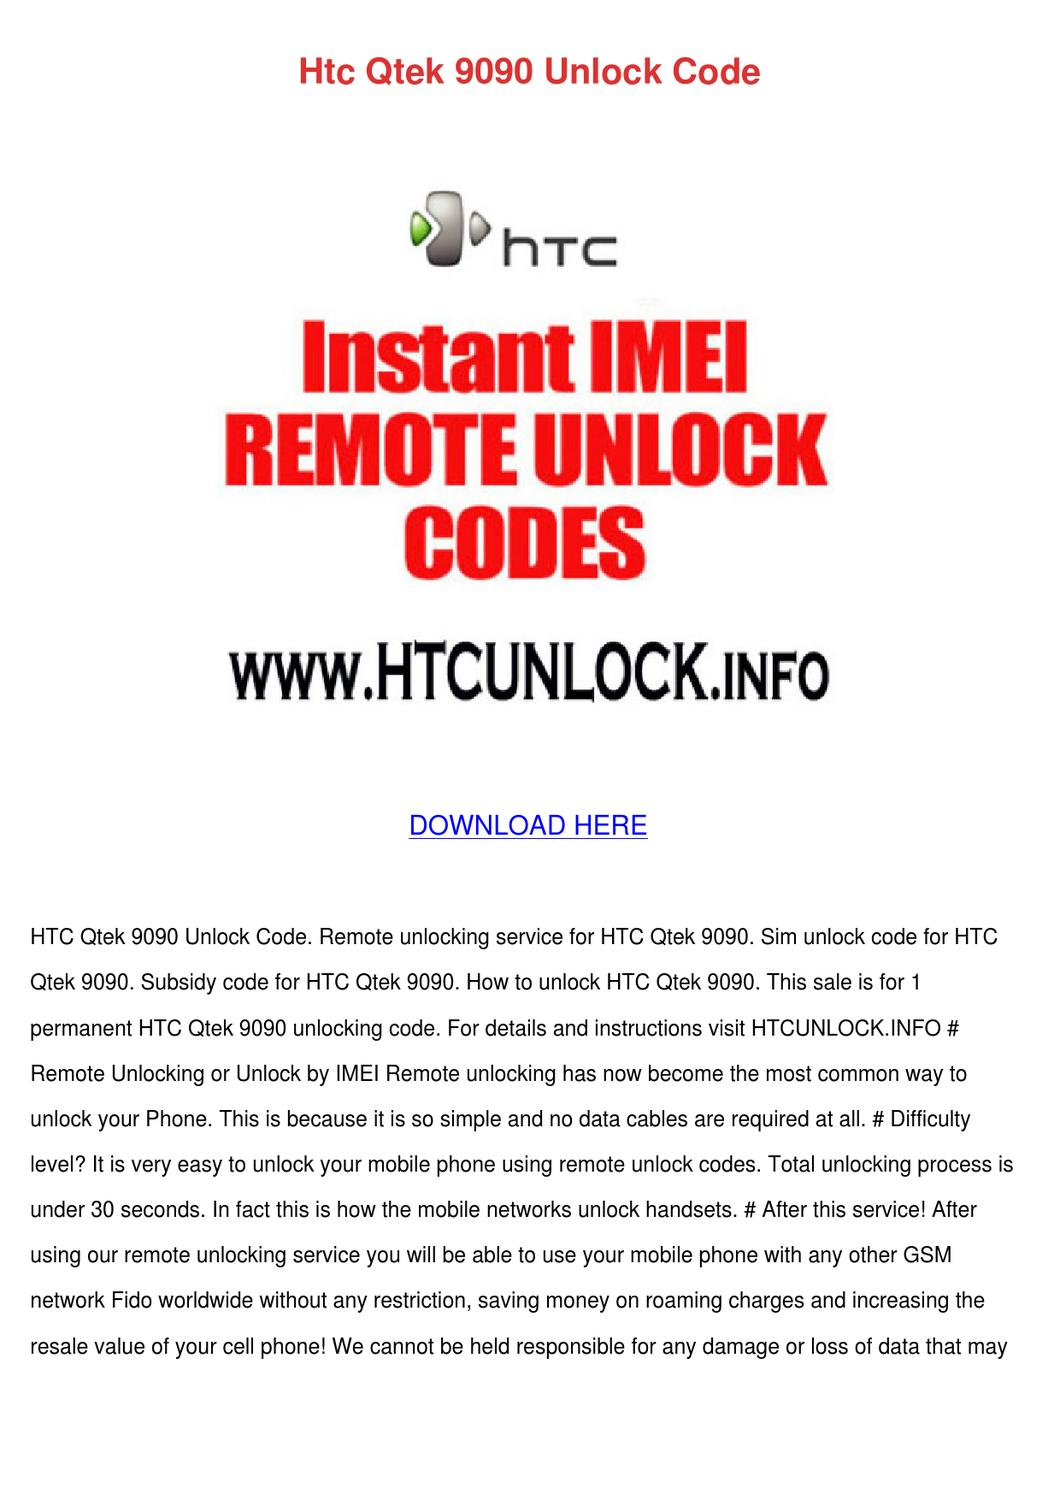 Htc Qtek 9090 Unlock Code by Enda Dito - issuu